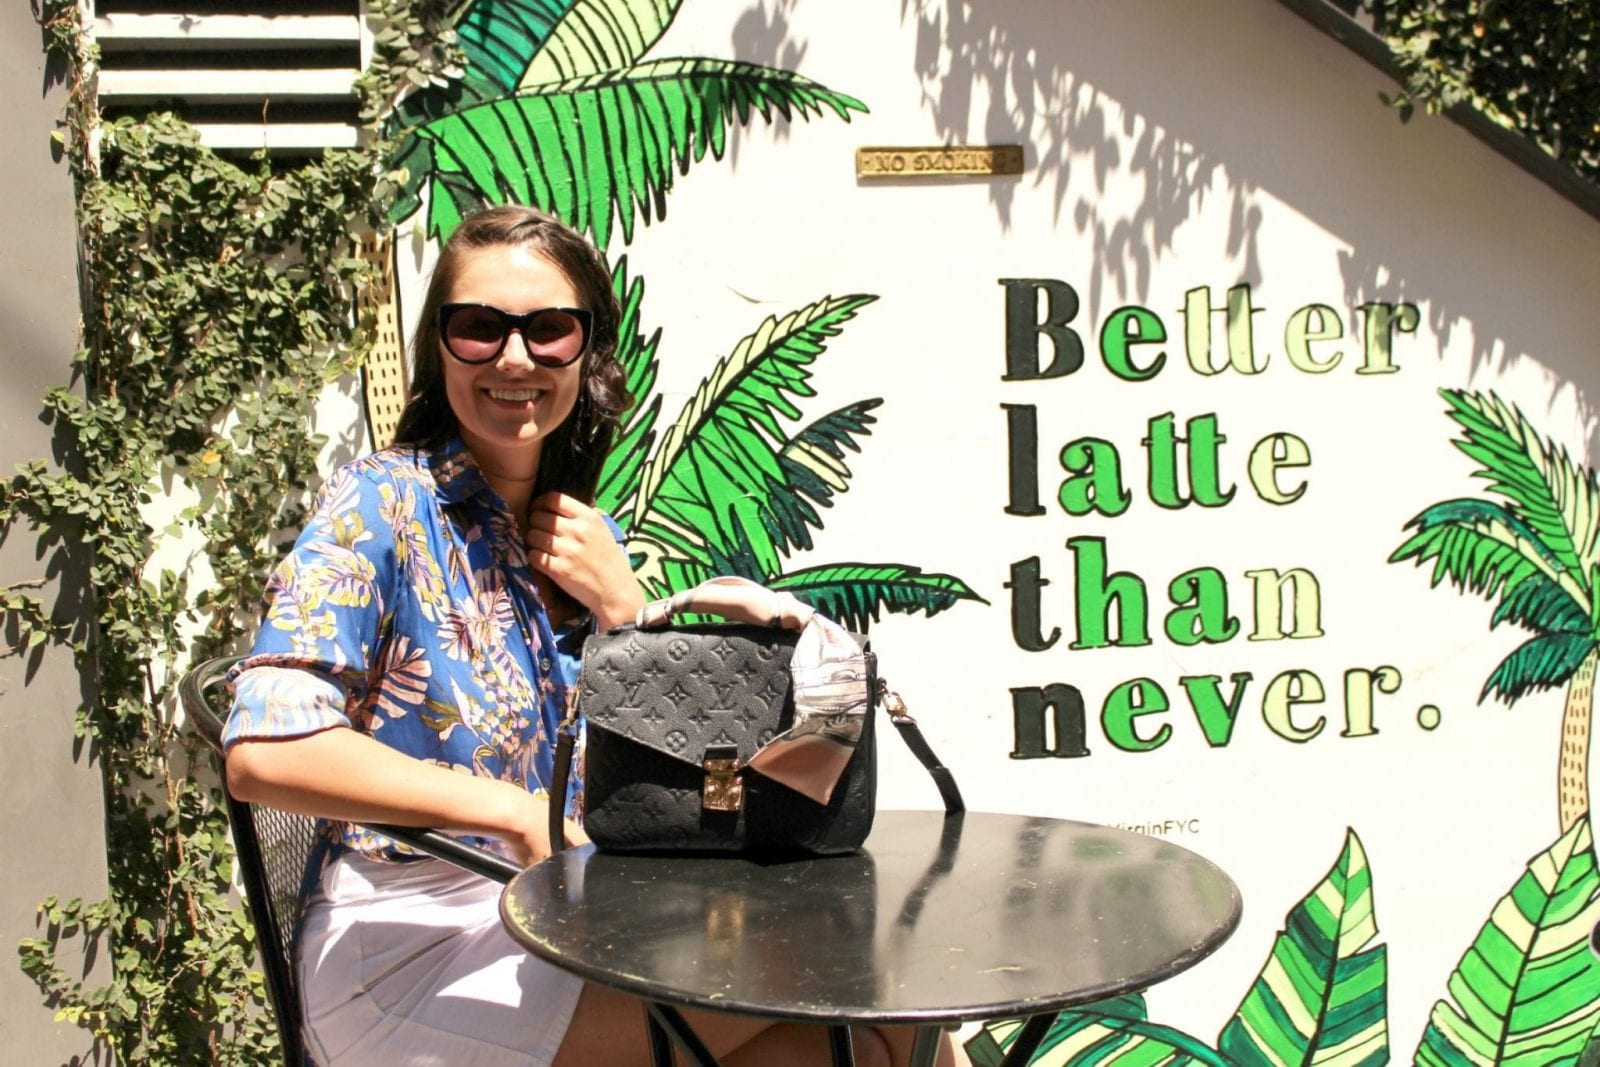 This is a photo of me sitting and smiling at a coffee table with my hawaiian shirt and my Louis Vuitton bag in Los Angeles.